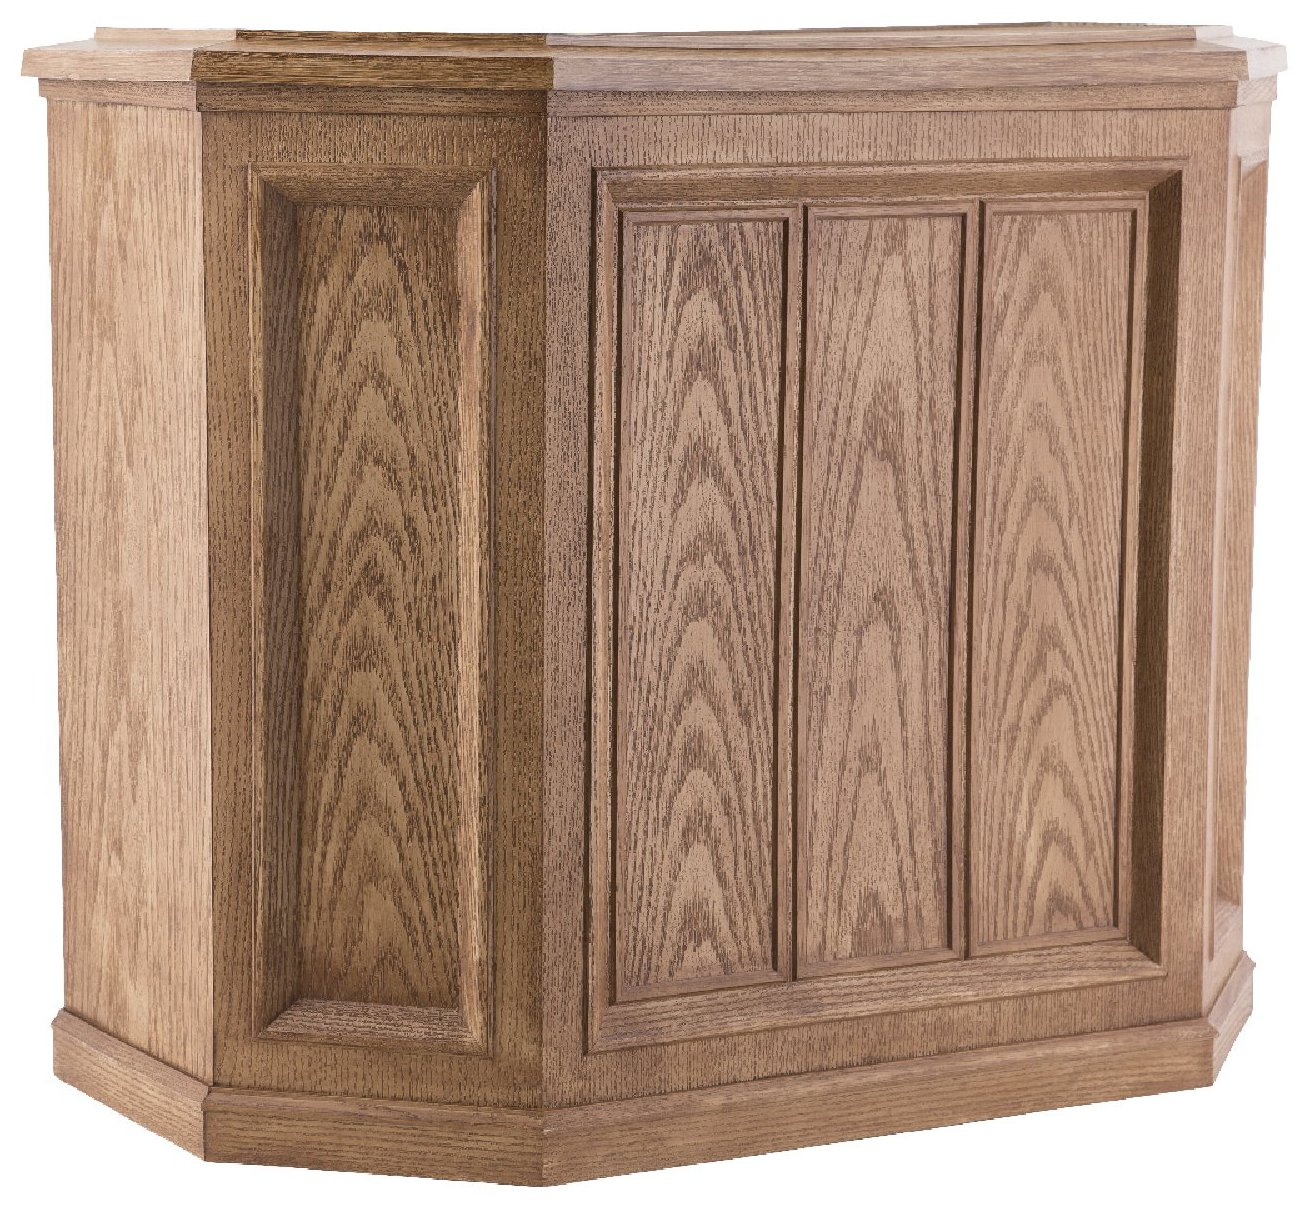 AIRCARE 696 400HB Digital Whole-House Console-Style Evaporative Humidifier, Light Oak by Essick Air